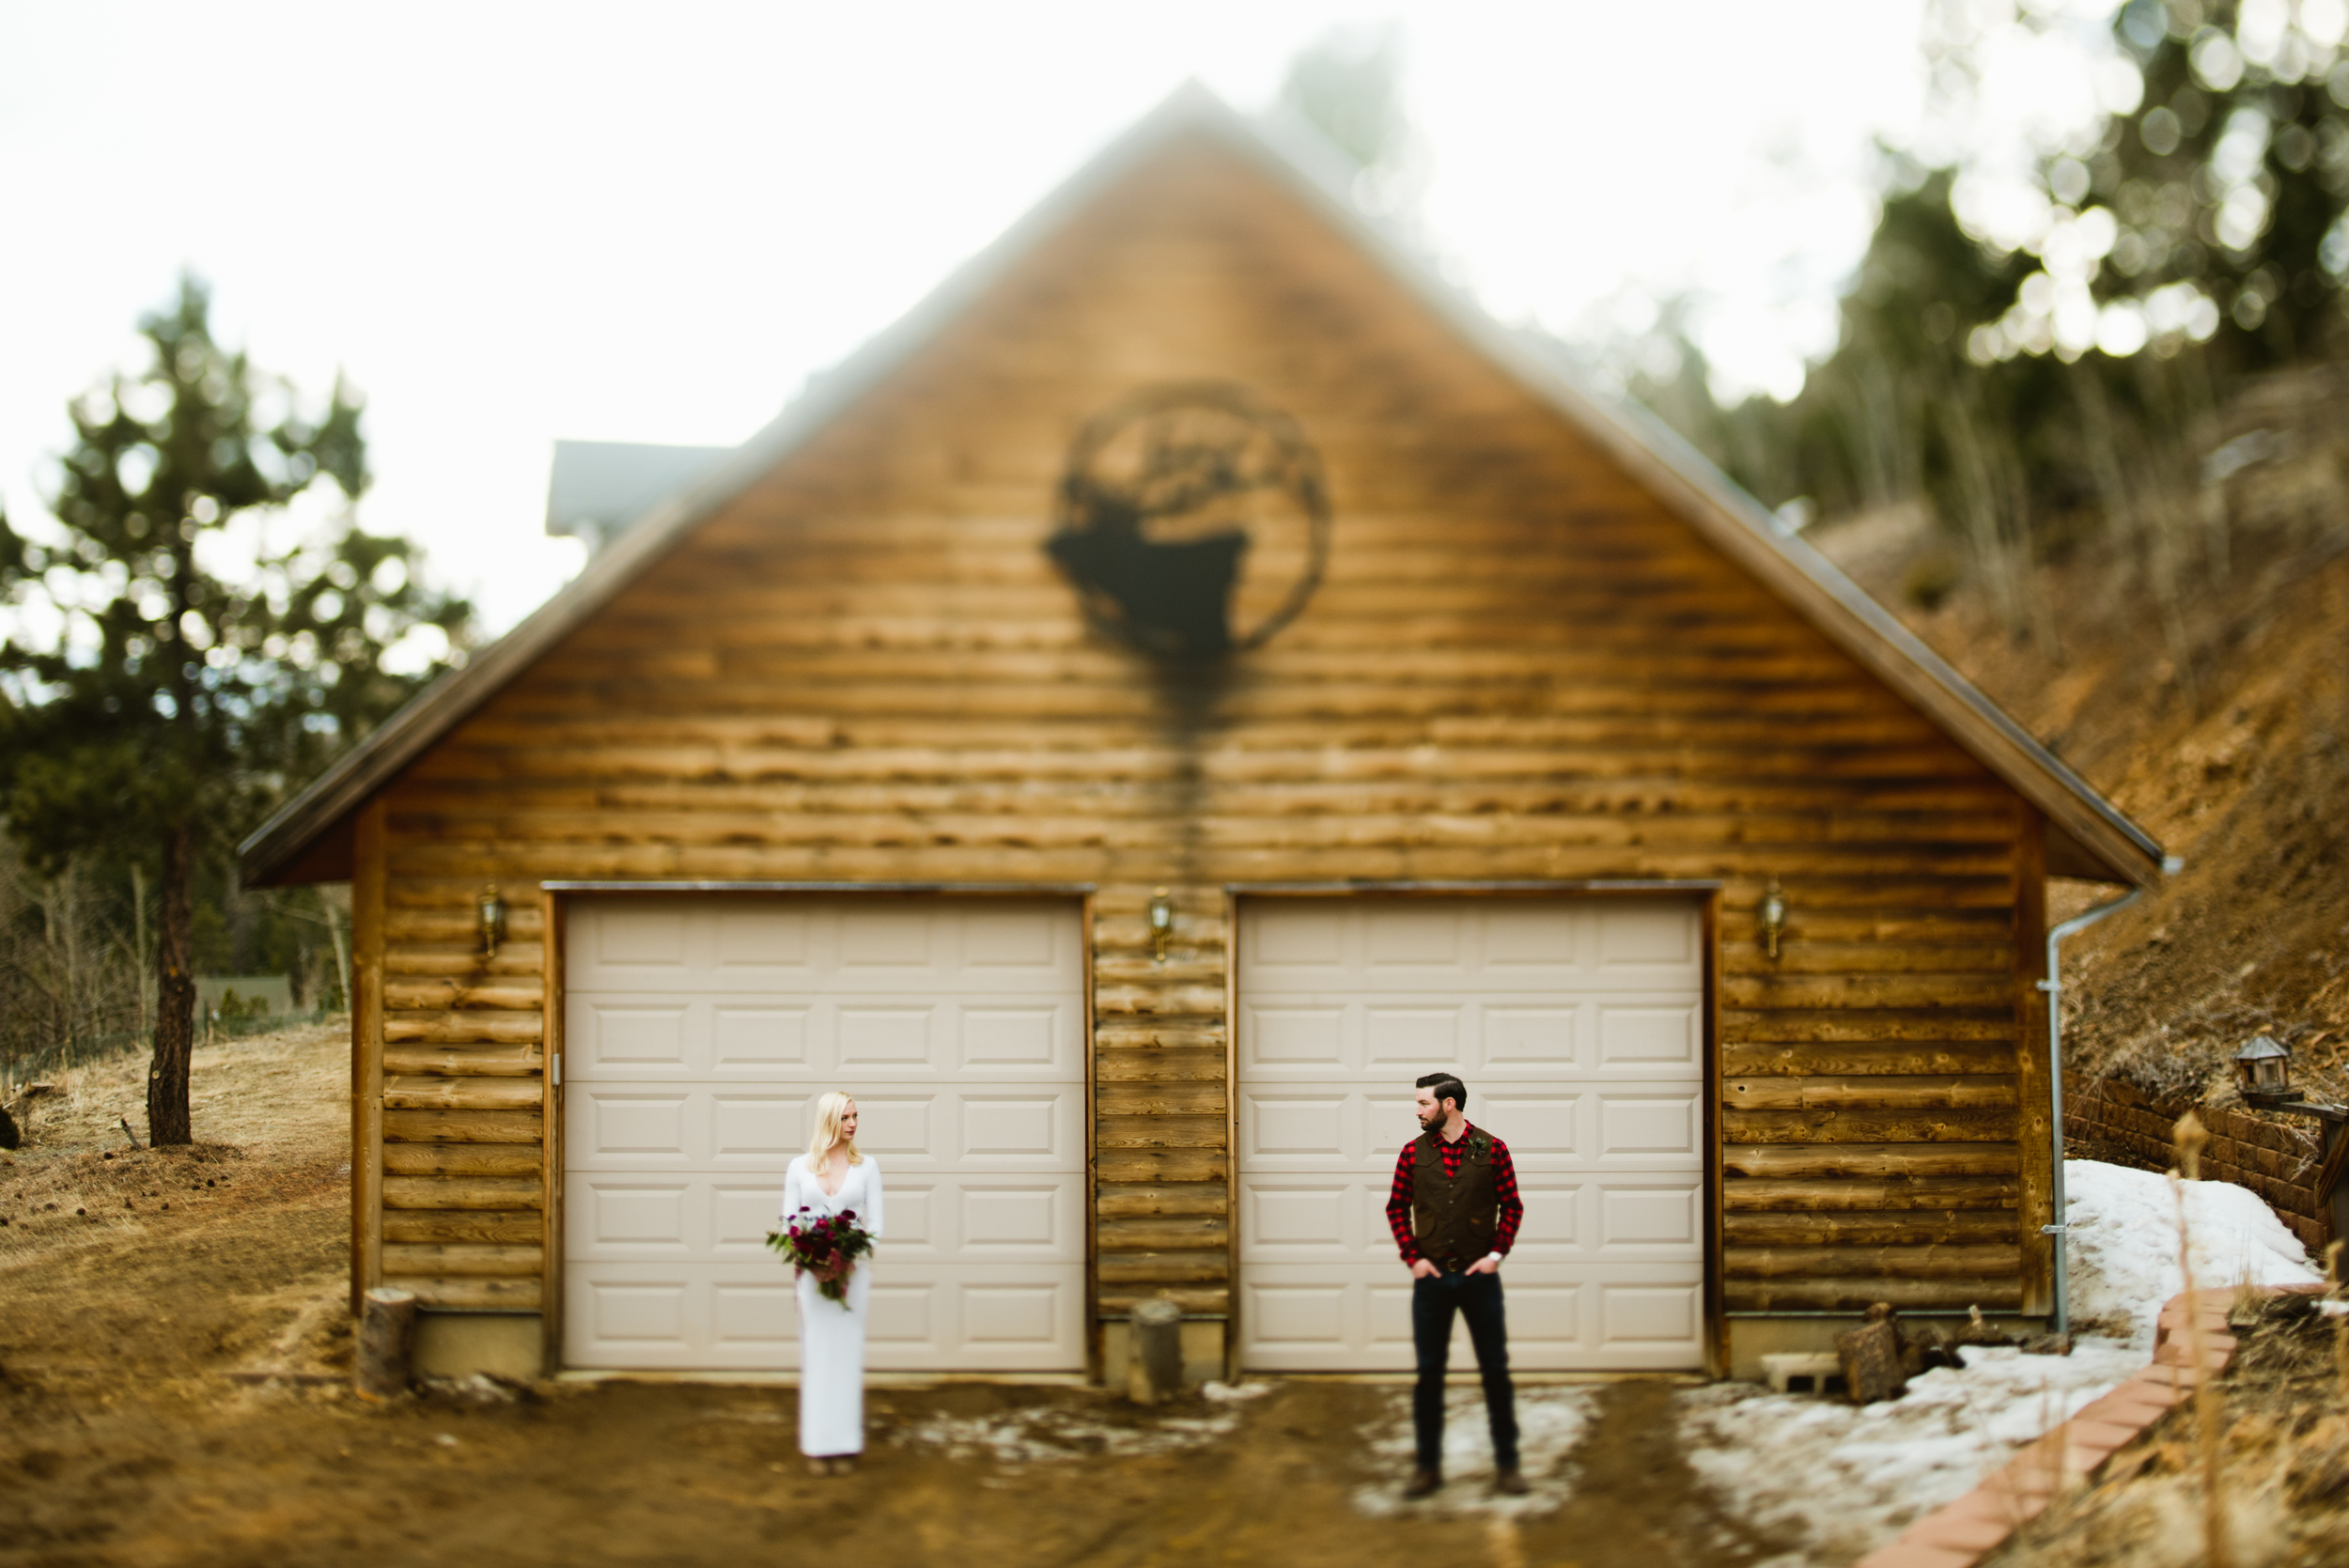 A simple and elegant pose of a bride and groom in front of a rustic cabin for their adventurous mountain elopement in Black Hawk, Colorado. | Photo by adventure elopement photographer, Maddie Mae.